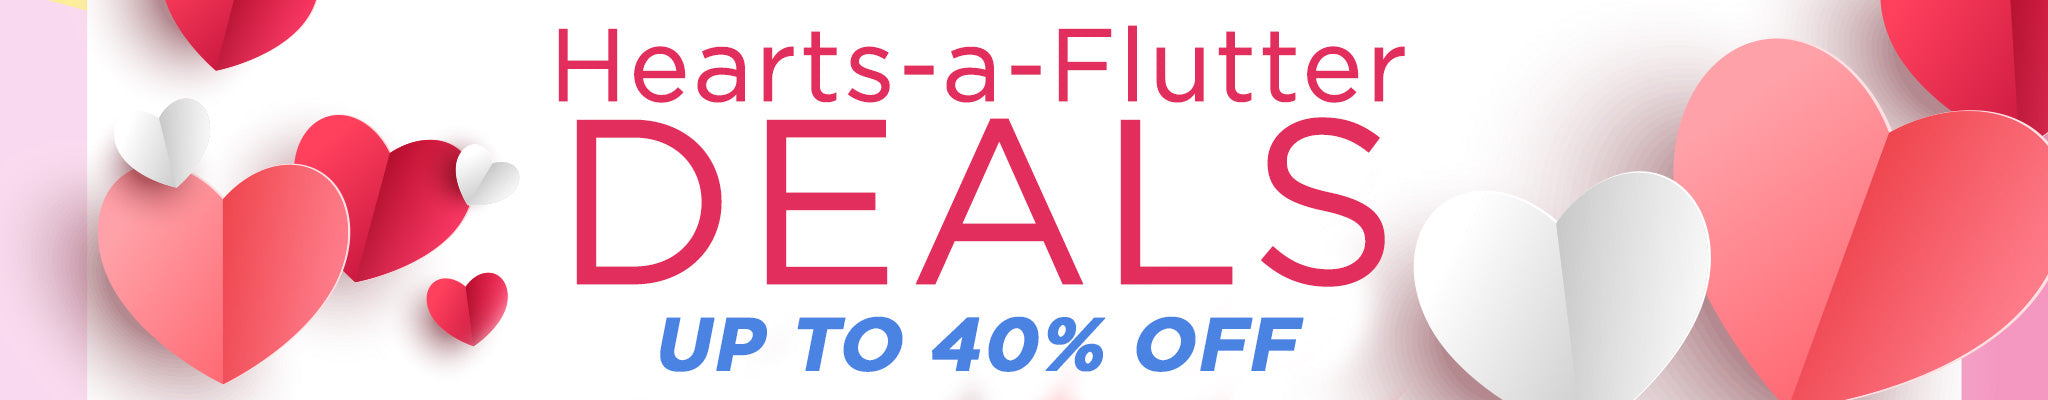 Hearts-a-Flutter Deals | Up to 40% OFF